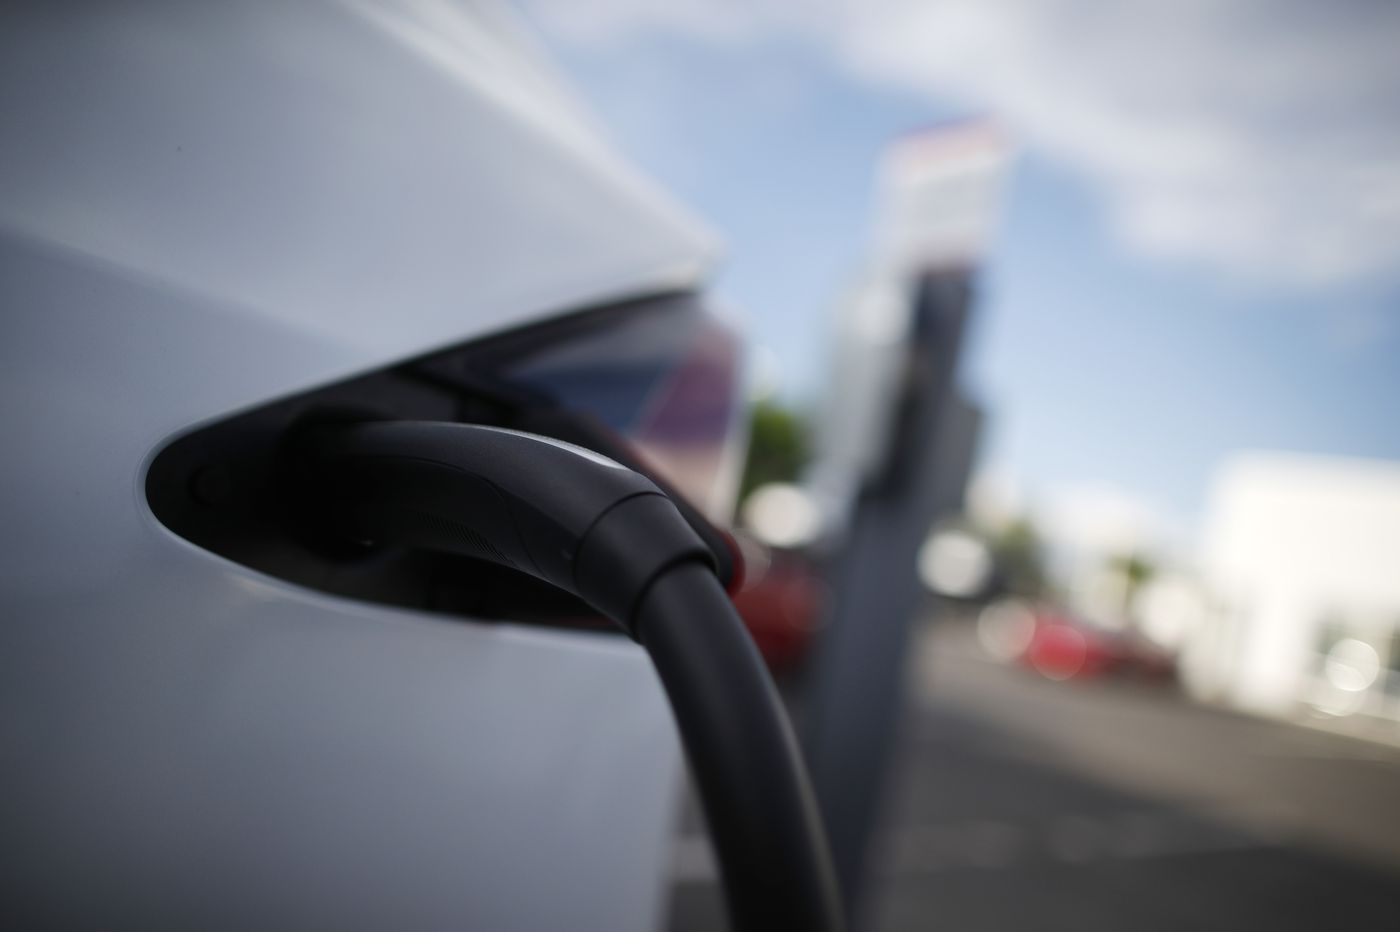 AAA: Cold can cut electric car range by 40 percent